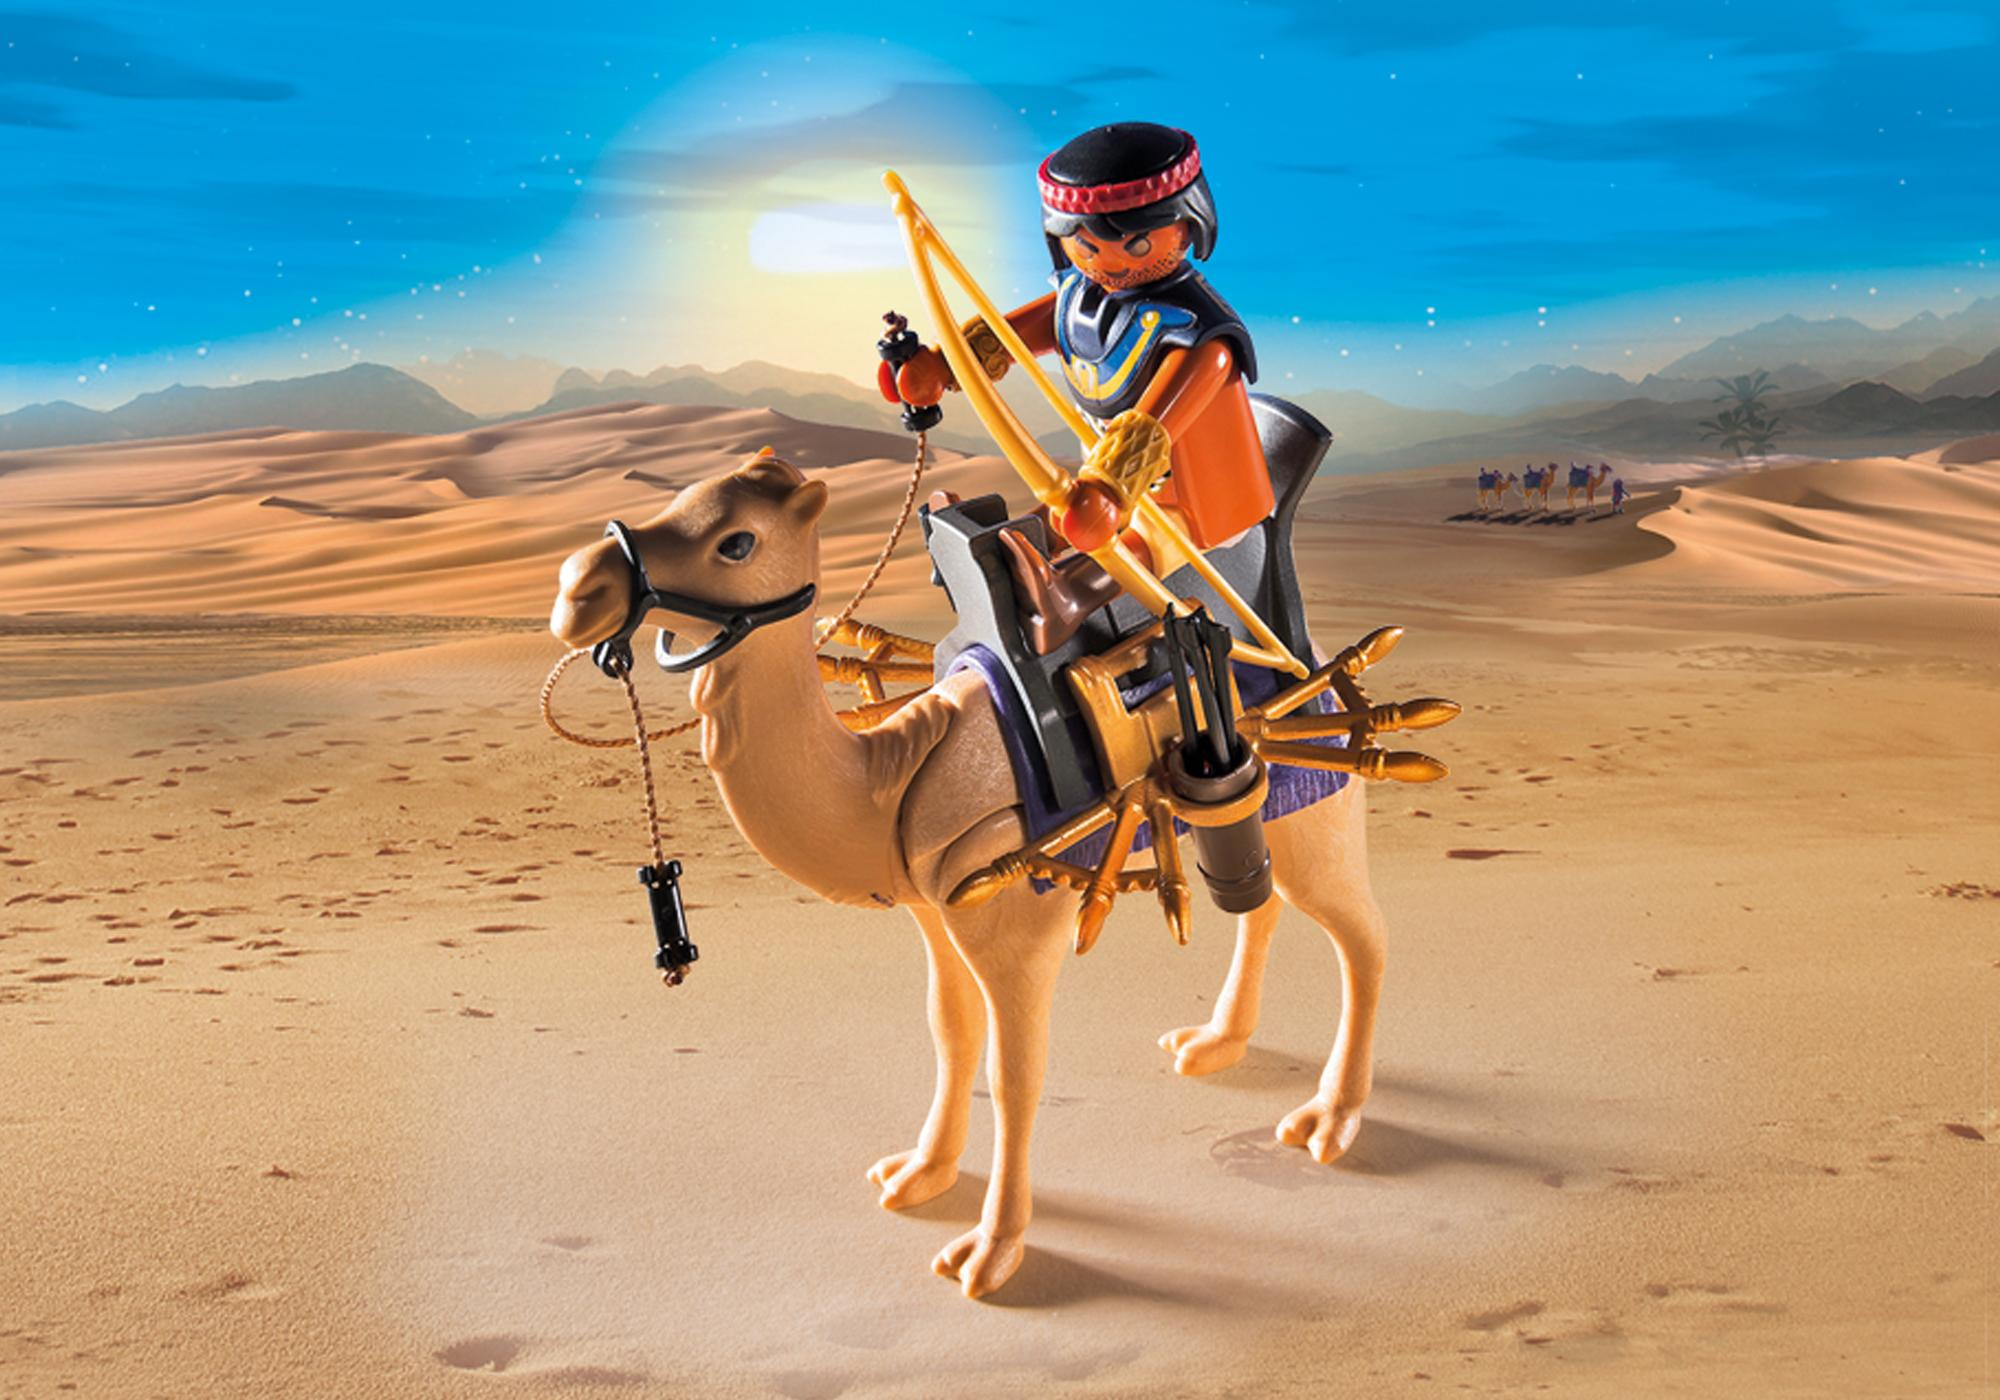 http://media.playmobil.com/i/playmobil/5389_product_extra1